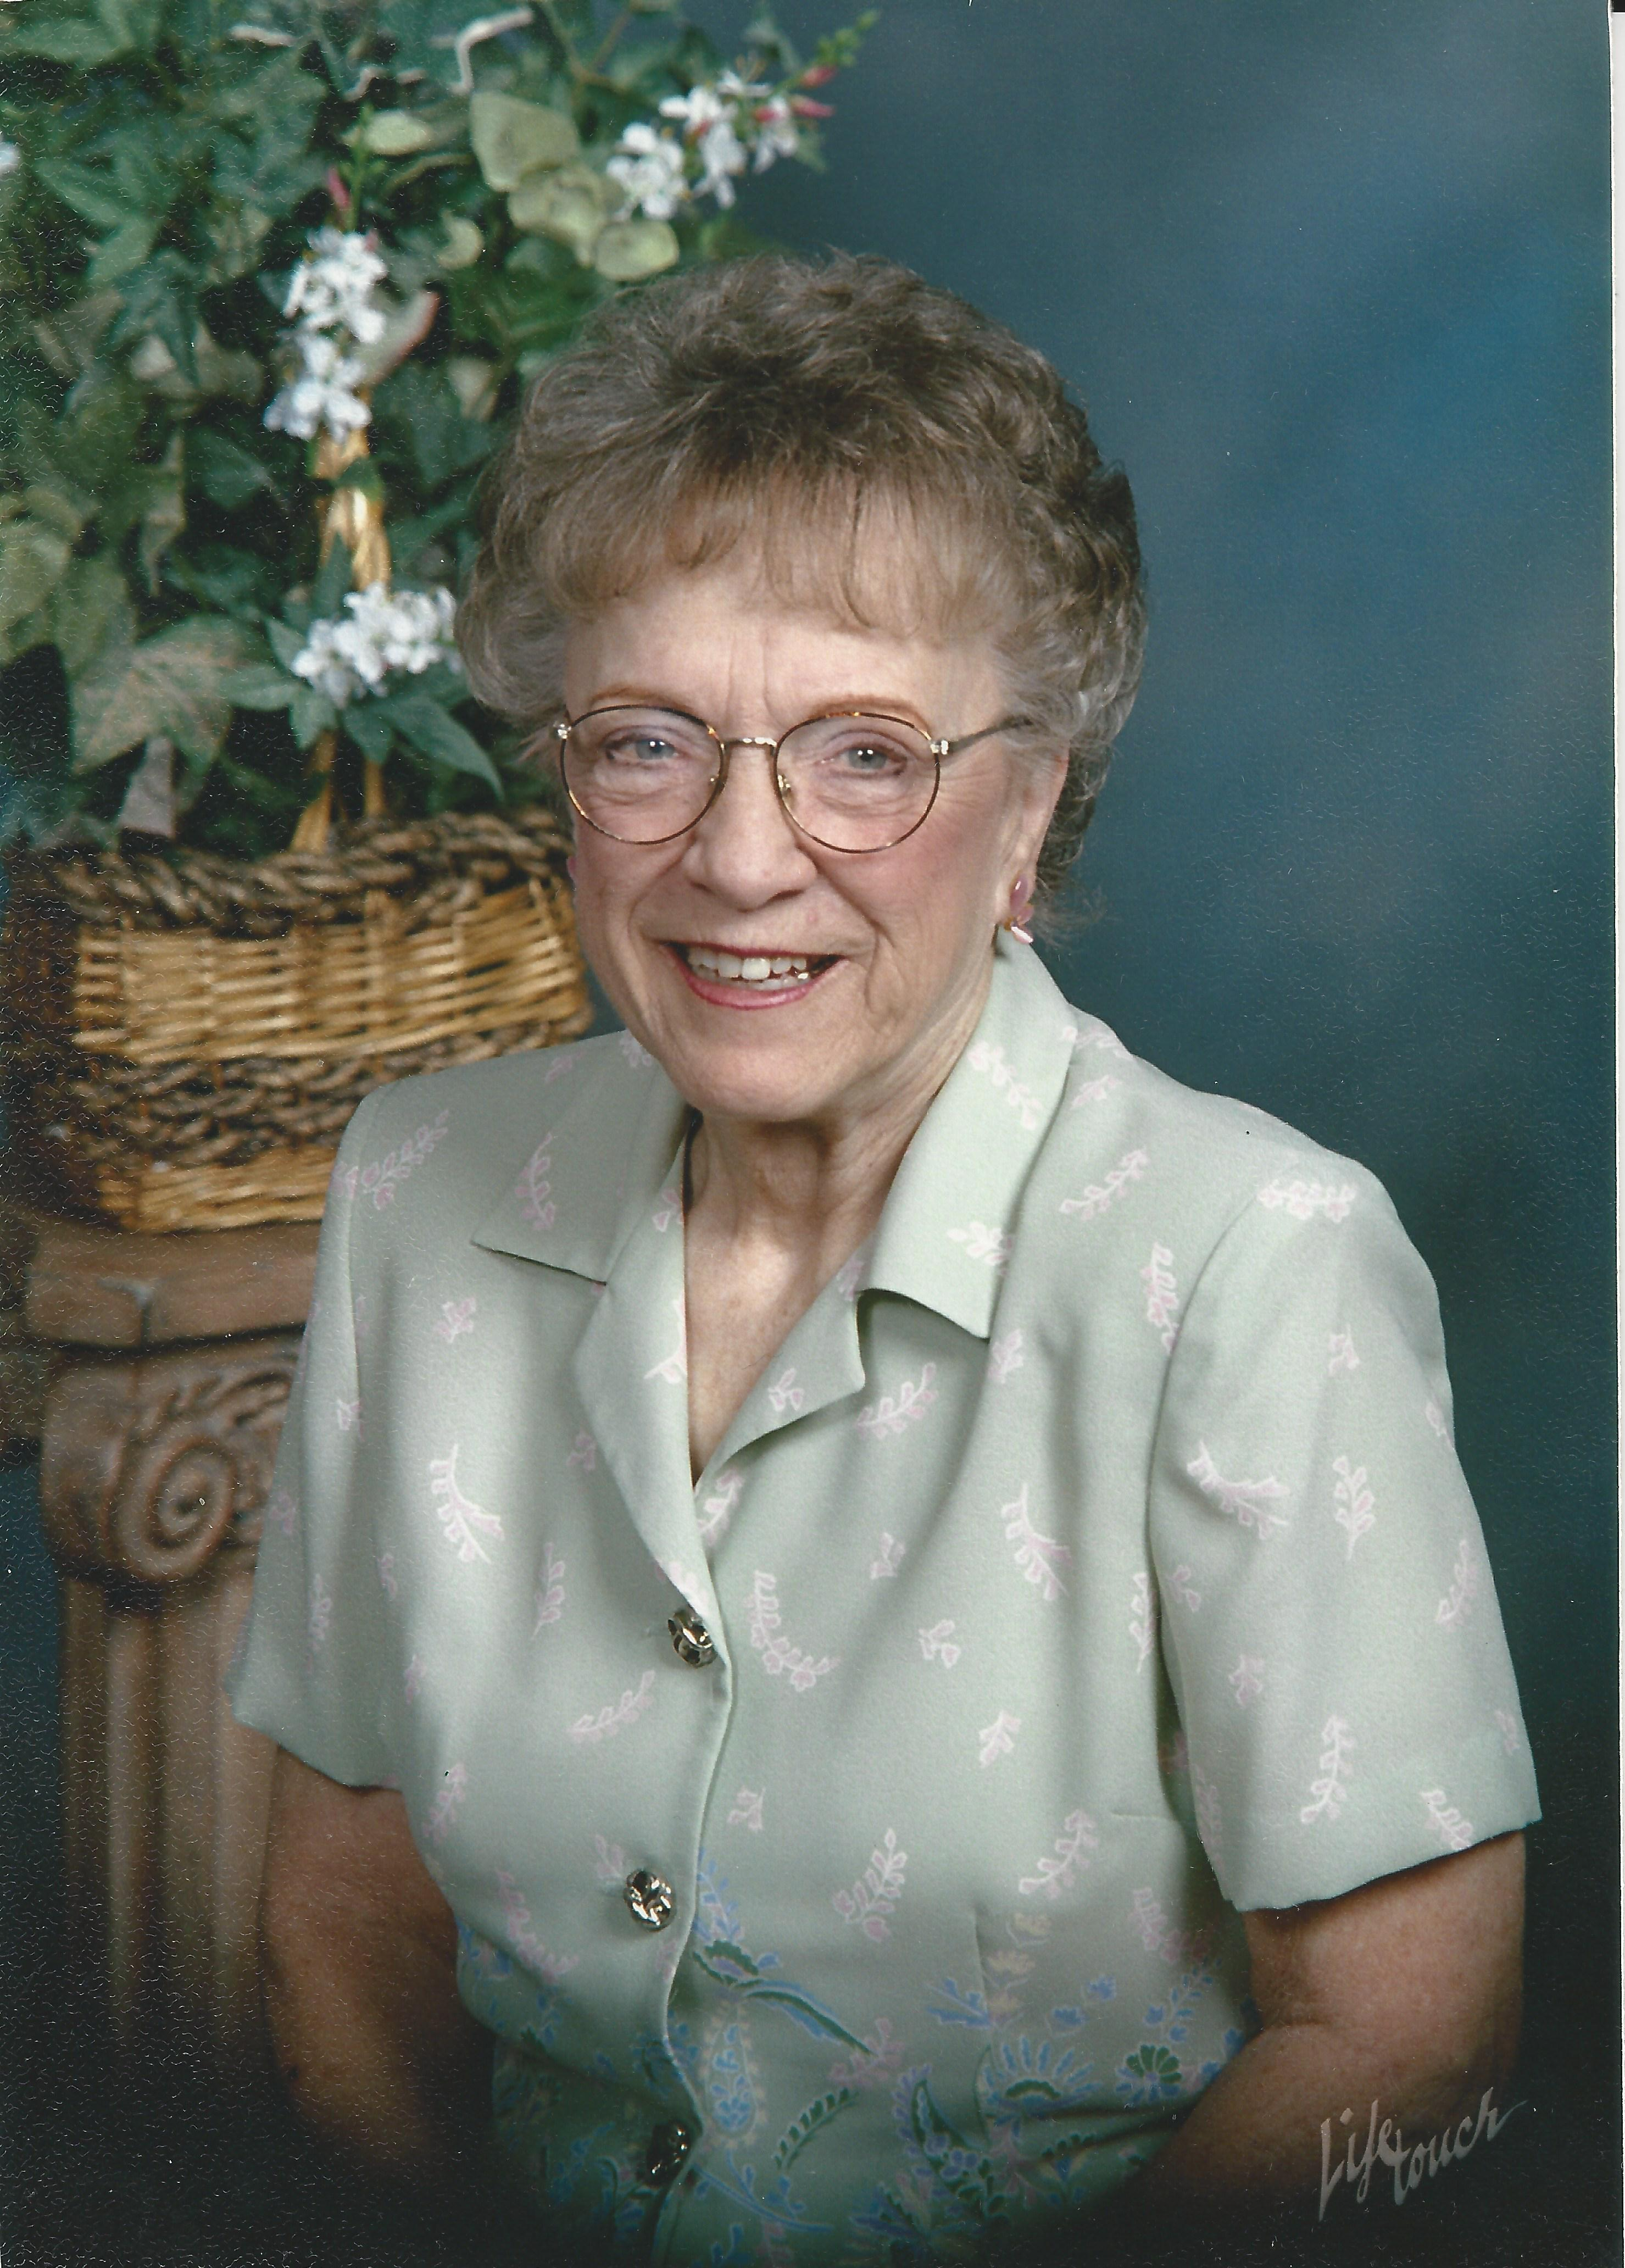 Illinois jefferson county bonnie - Lois Irene Horton Age 82 Of Rolla Missouri Formerly Of Barnhart Passed Away On Thursday November 1 2012 At Her Rolla Residence Born On November 4